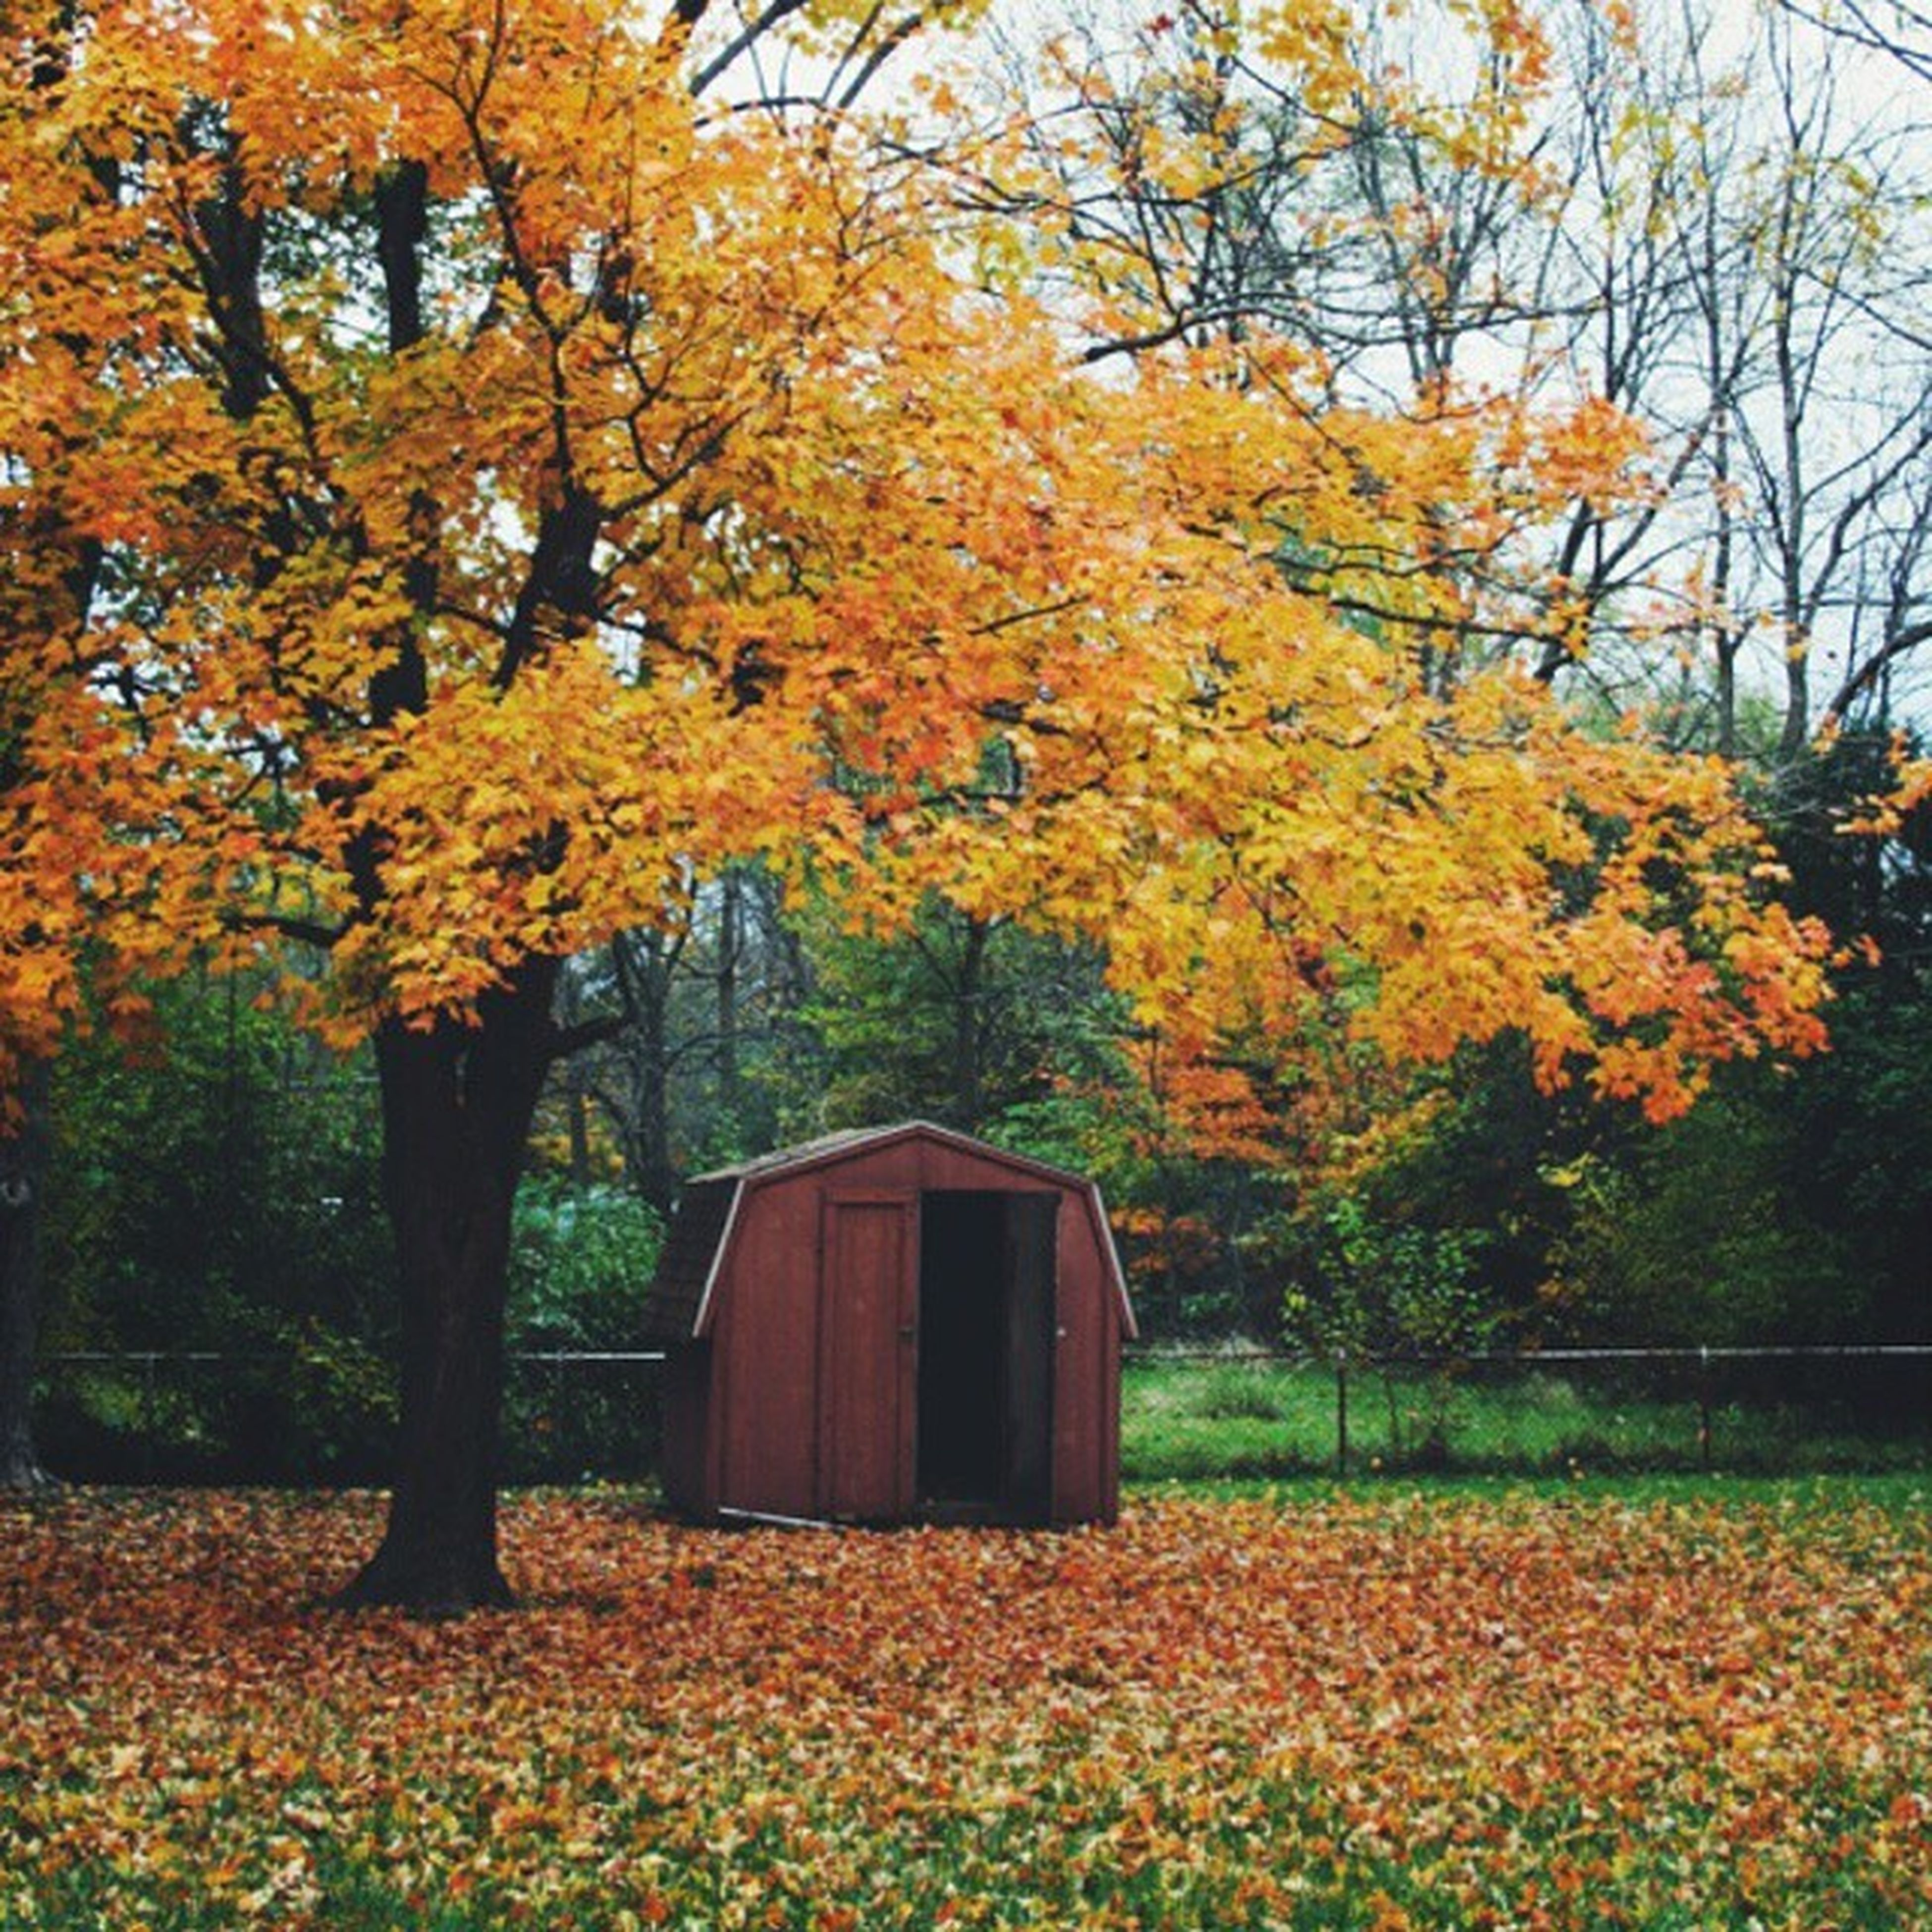 tree, autumn, change, season, yellow, growth, orange color, beauty in nature, branch, nature, tranquility, flower, built structure, tranquil scene, architecture, building exterior, leaf, scenics, field, house